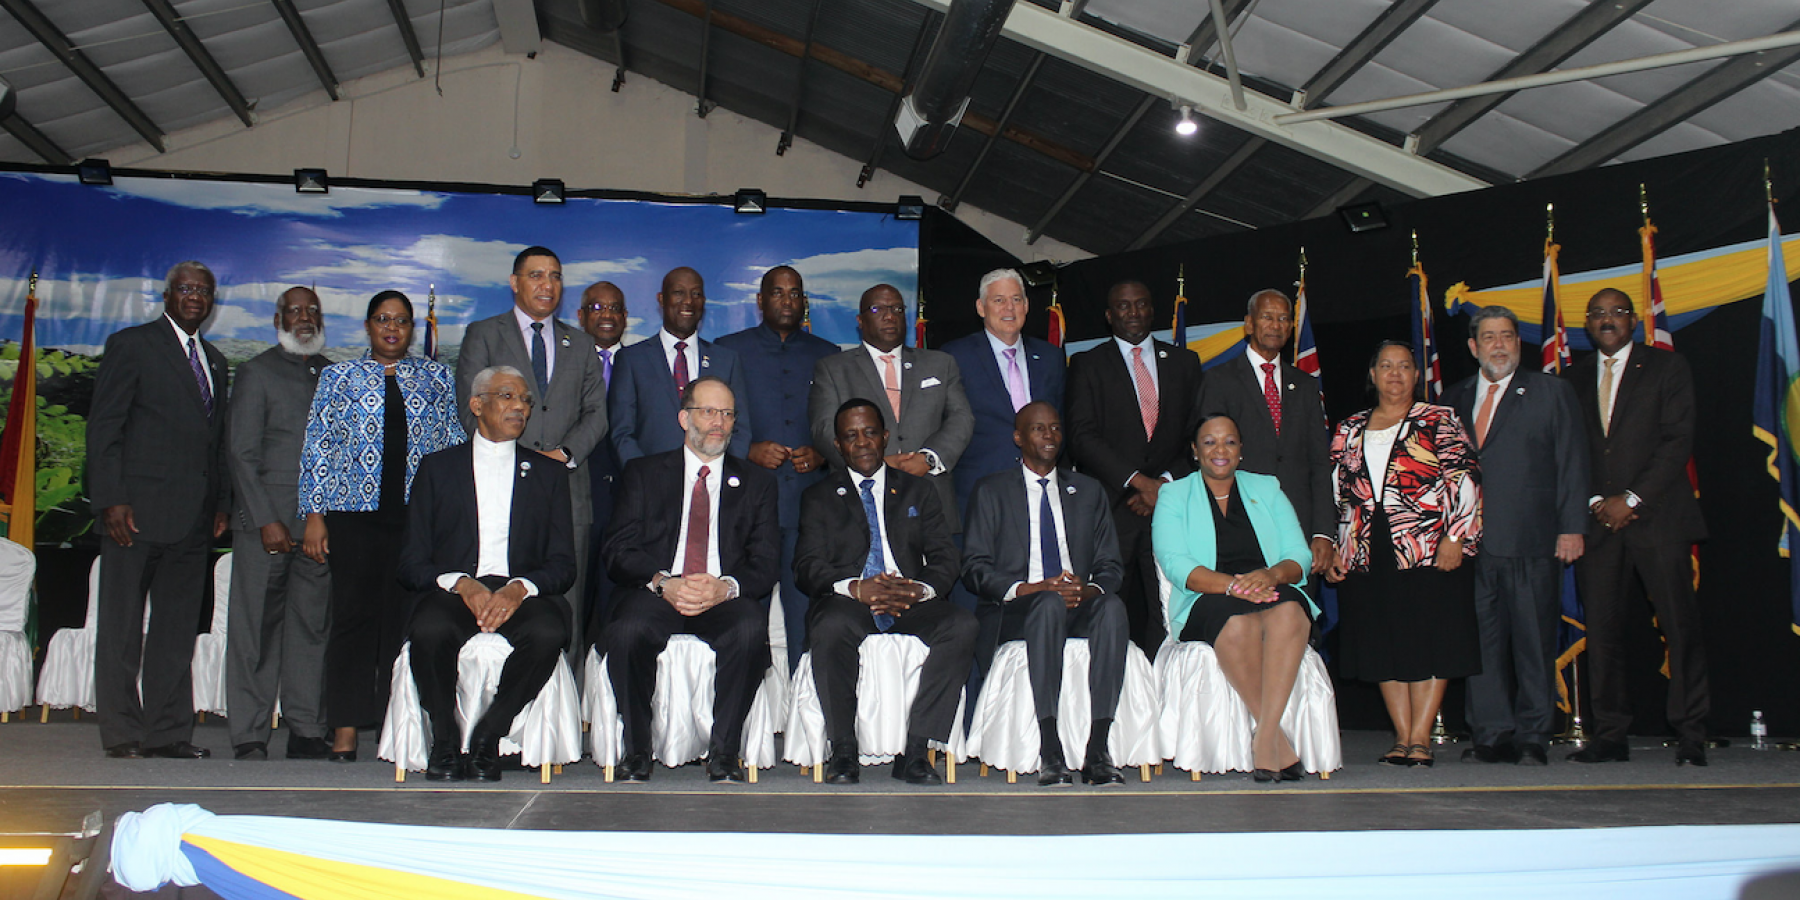 Opening ceremony, 38th Meeting of the Conference of Heads of Government of CARICOM, Grenada Trade Centre, Grenada, 4 July, 2017.